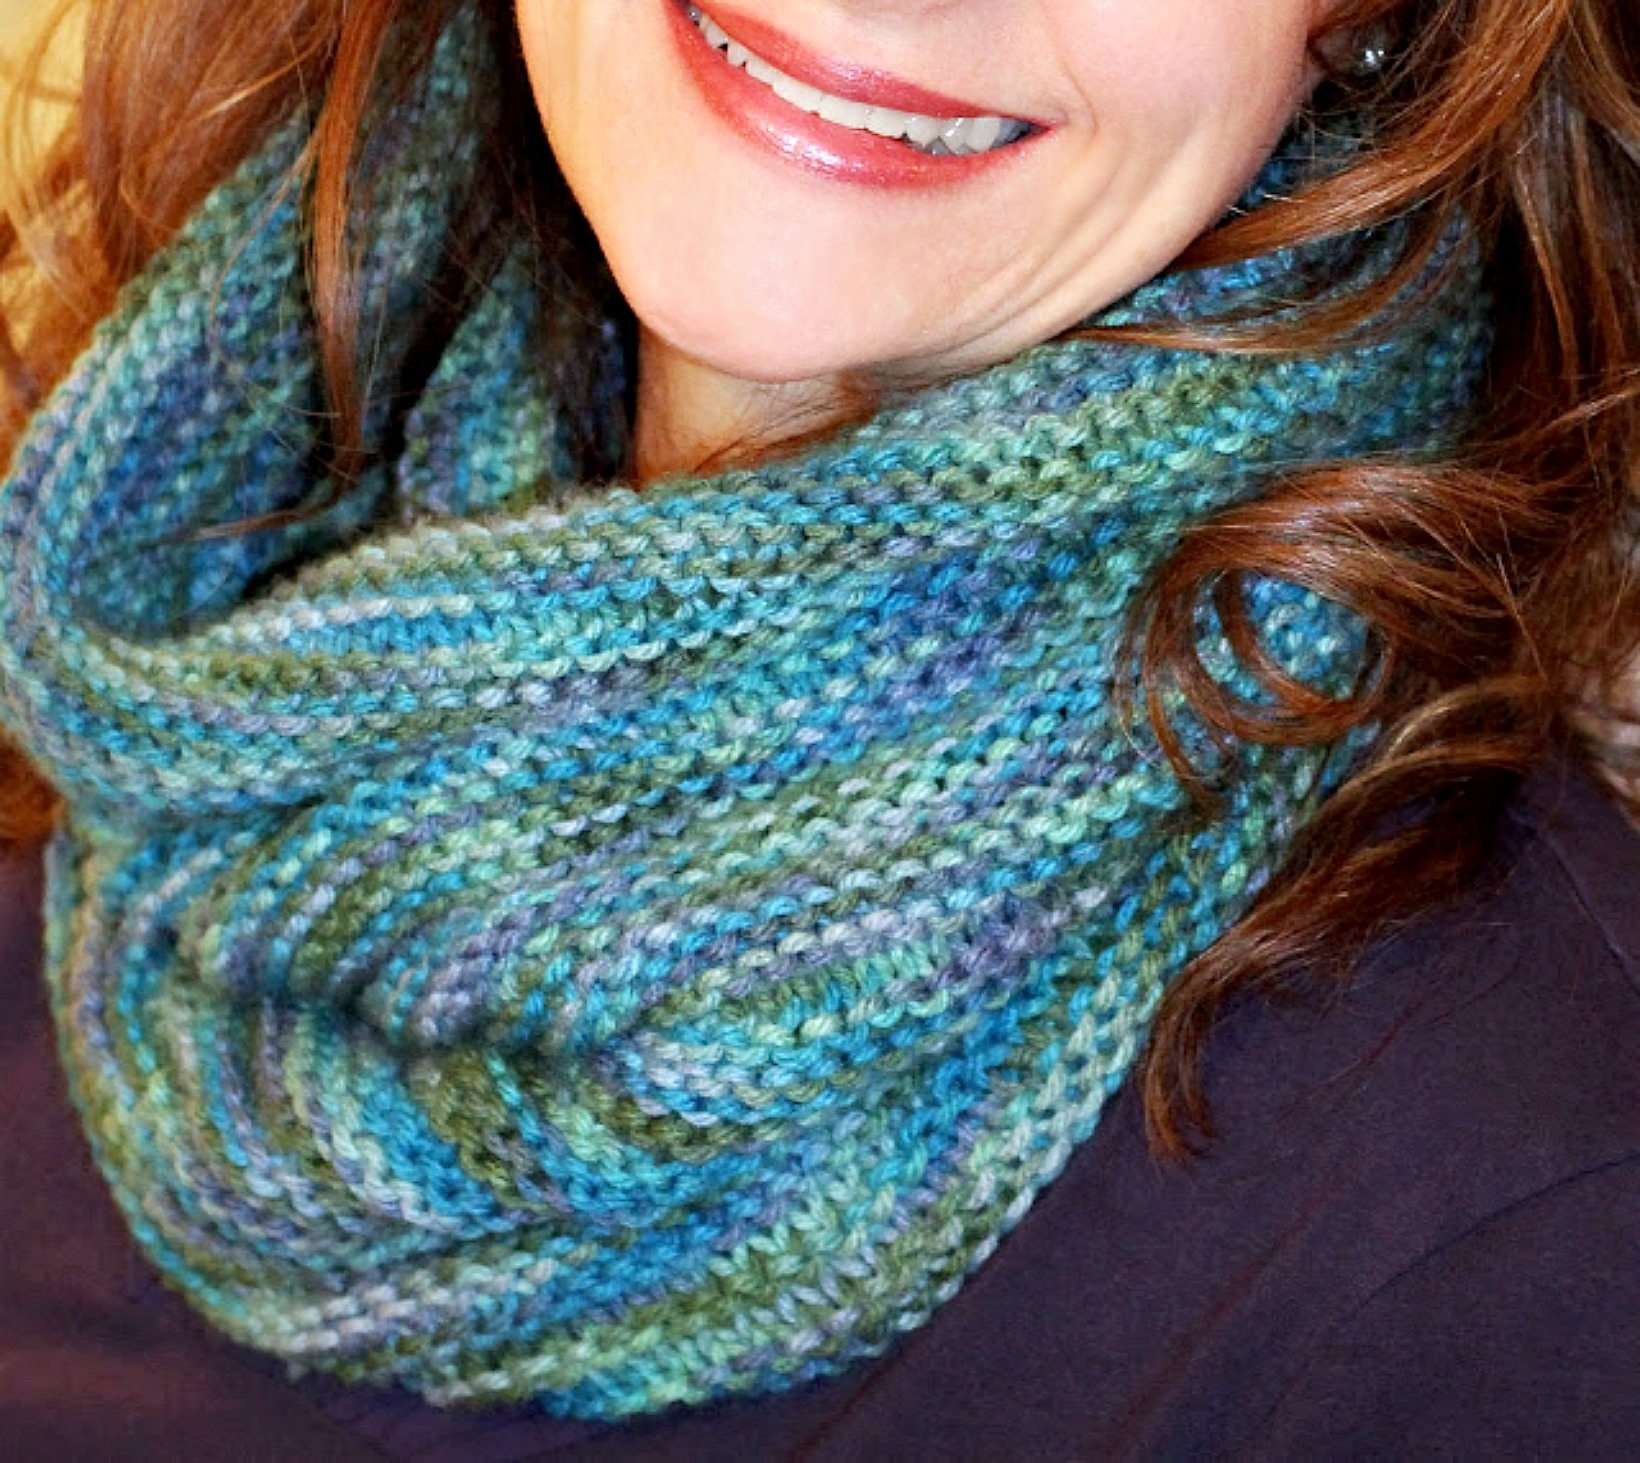 Knitted cowl hoodie pattern is super cute, warm and fashionable.